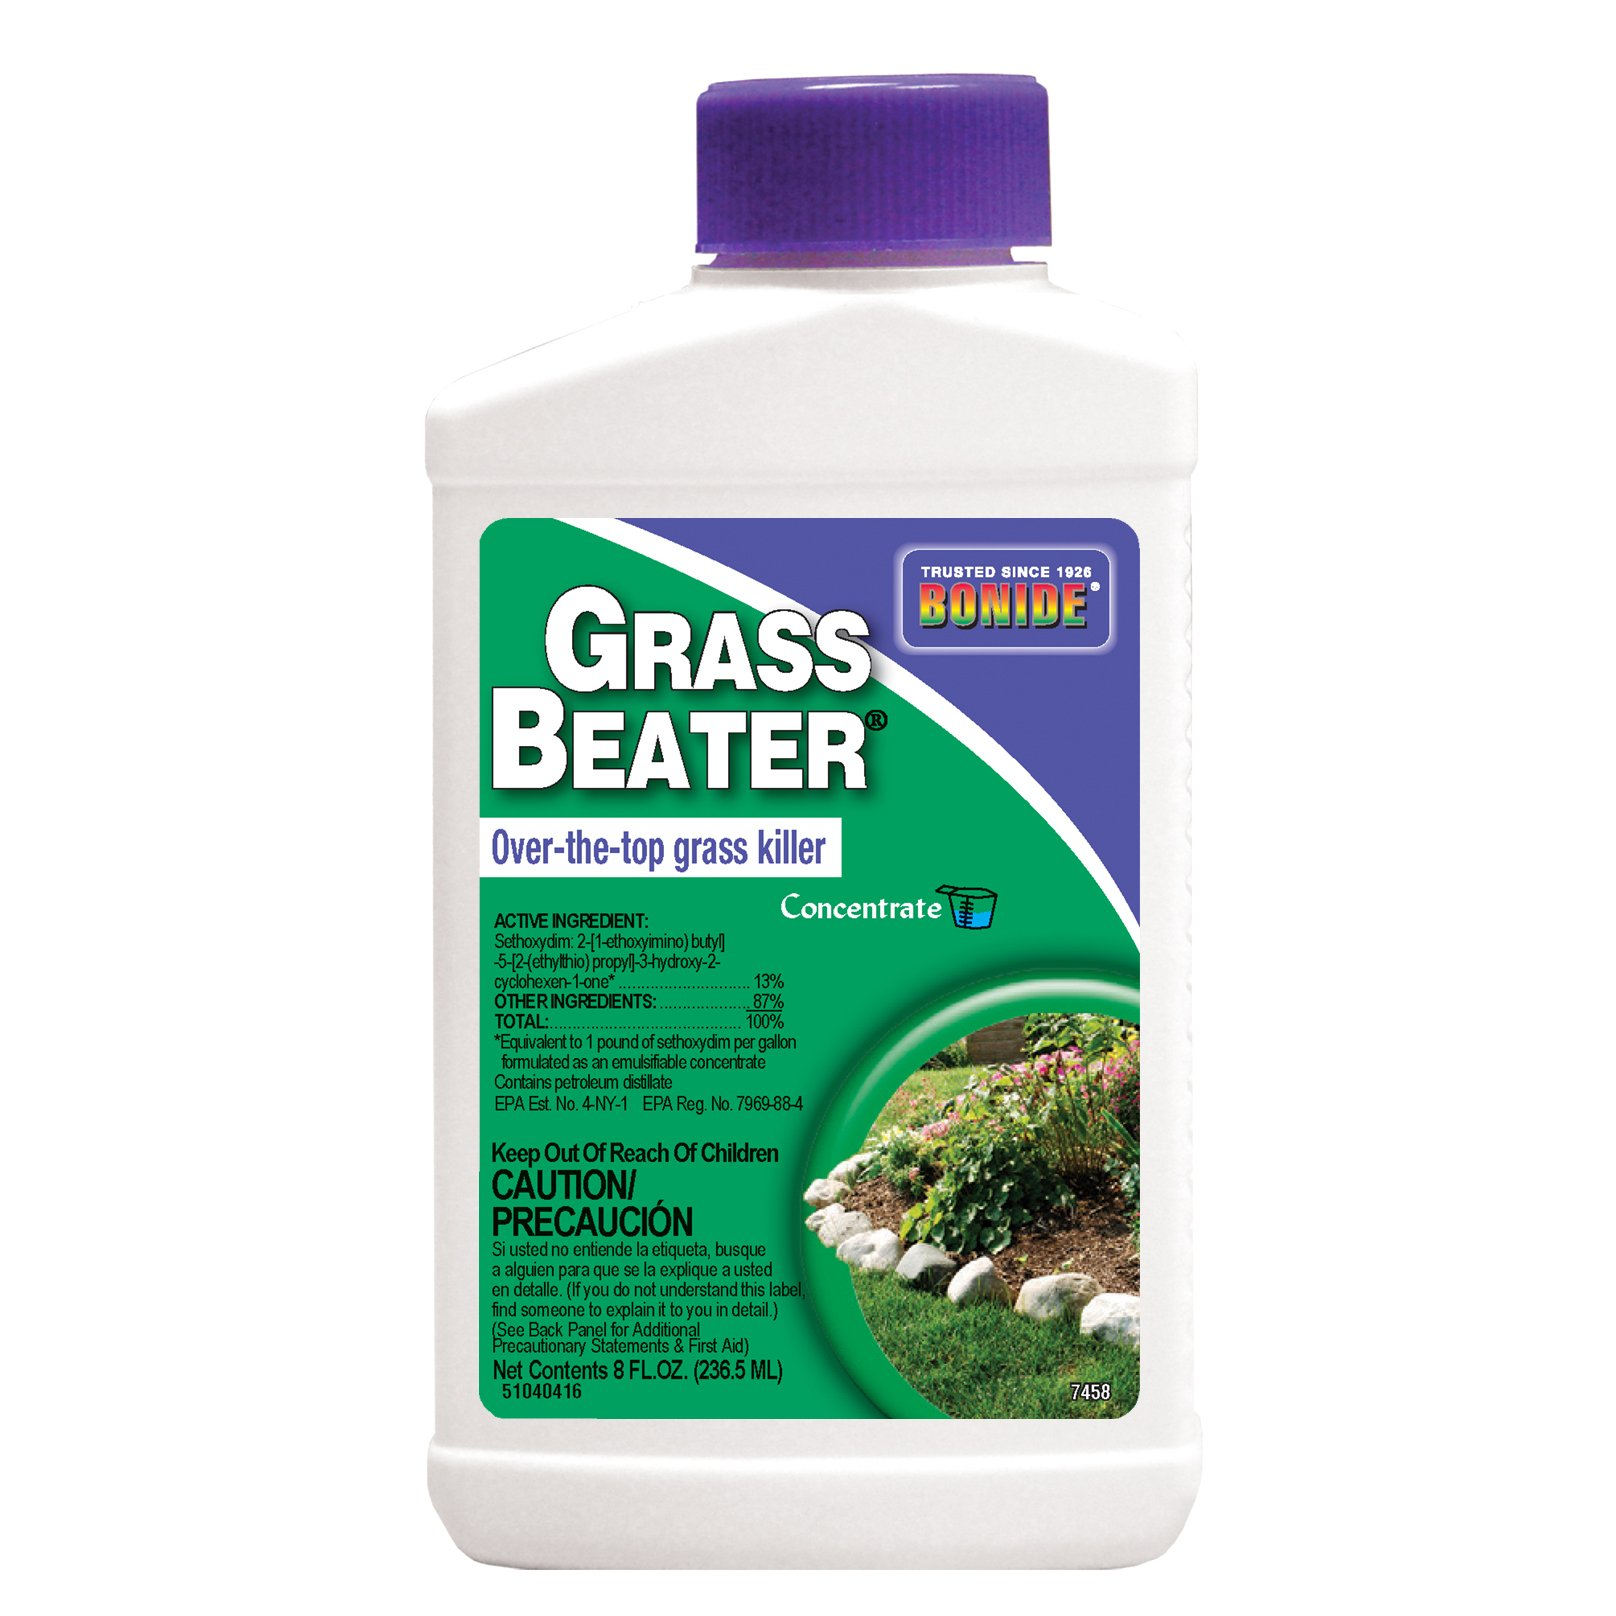 Bonide (BND7458) - Grass Beater Concentrate, Over-the-Top Grass and Weed Killer (8 oz.)